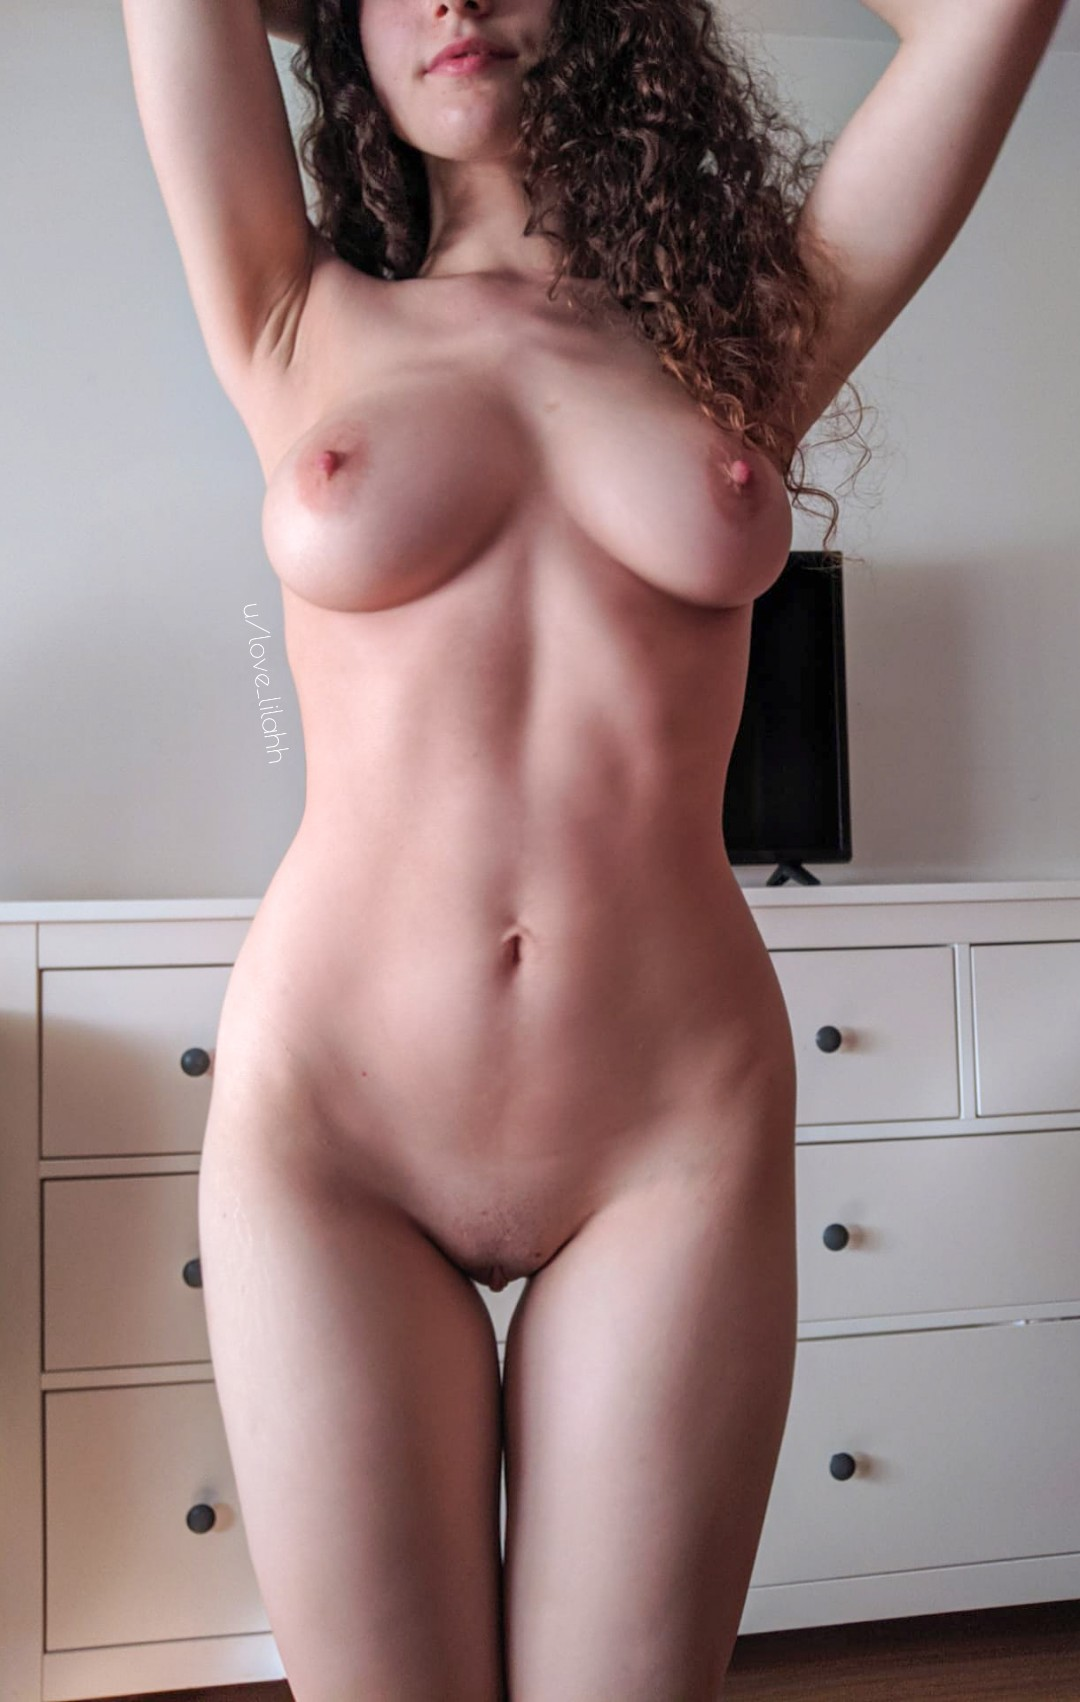 NEW PORN: Love_lilahh Nude Onlyfans Love Lilah!